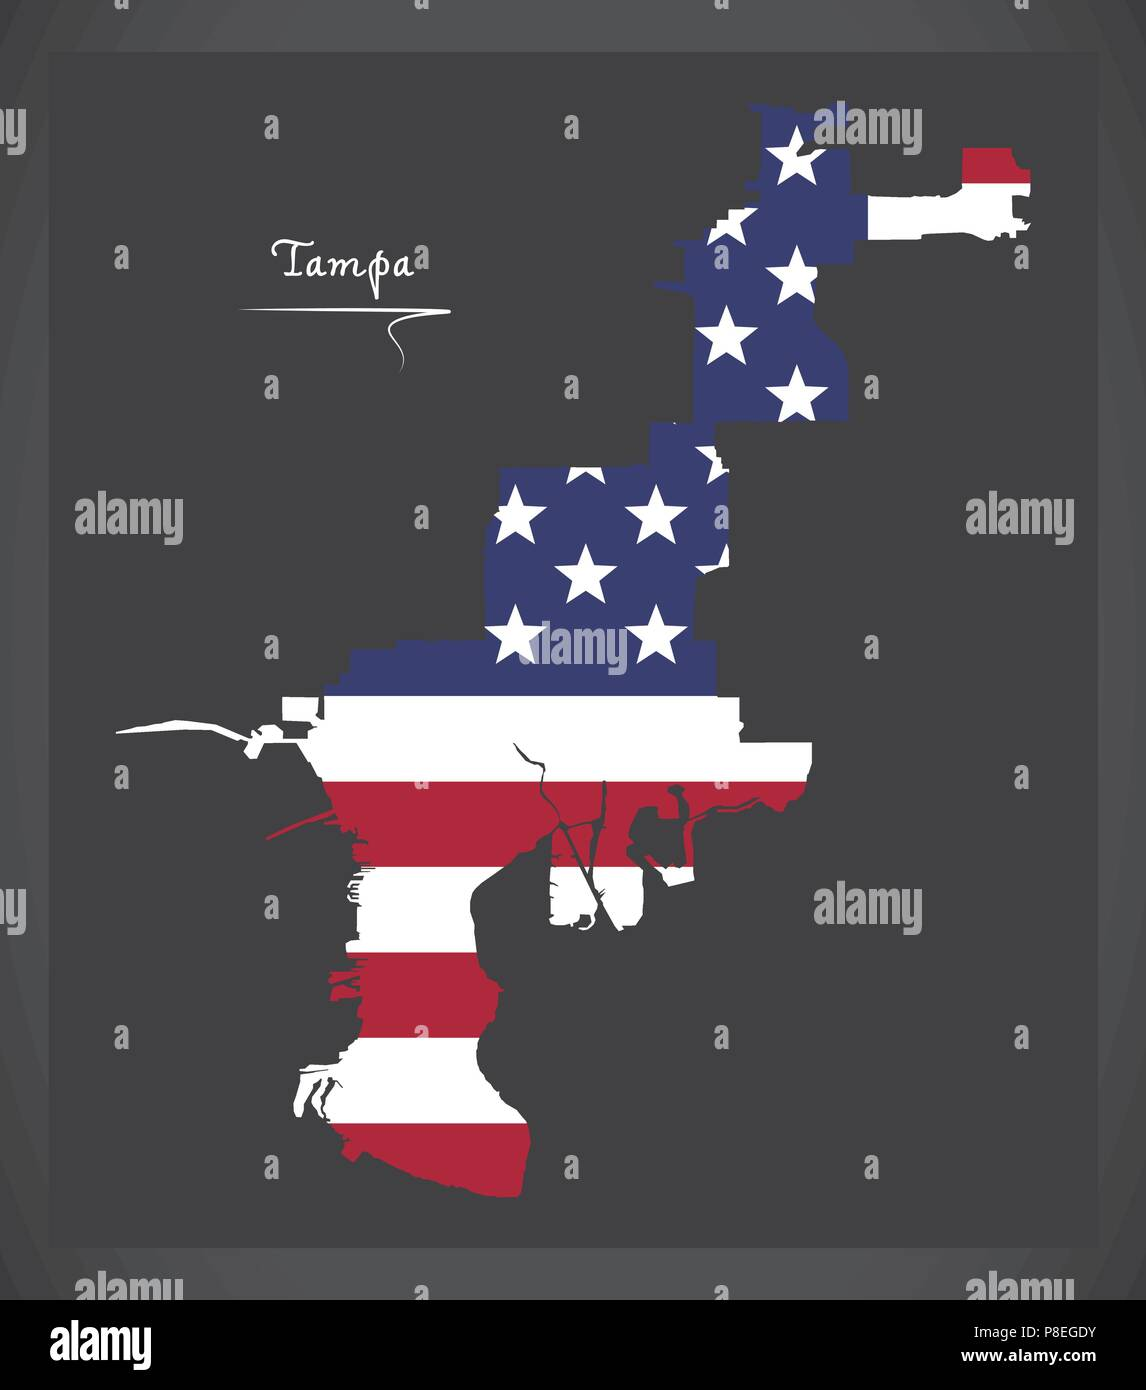 Map Of Tampa Florida.Tampa Florida Map With American National Flag Illustration Stock